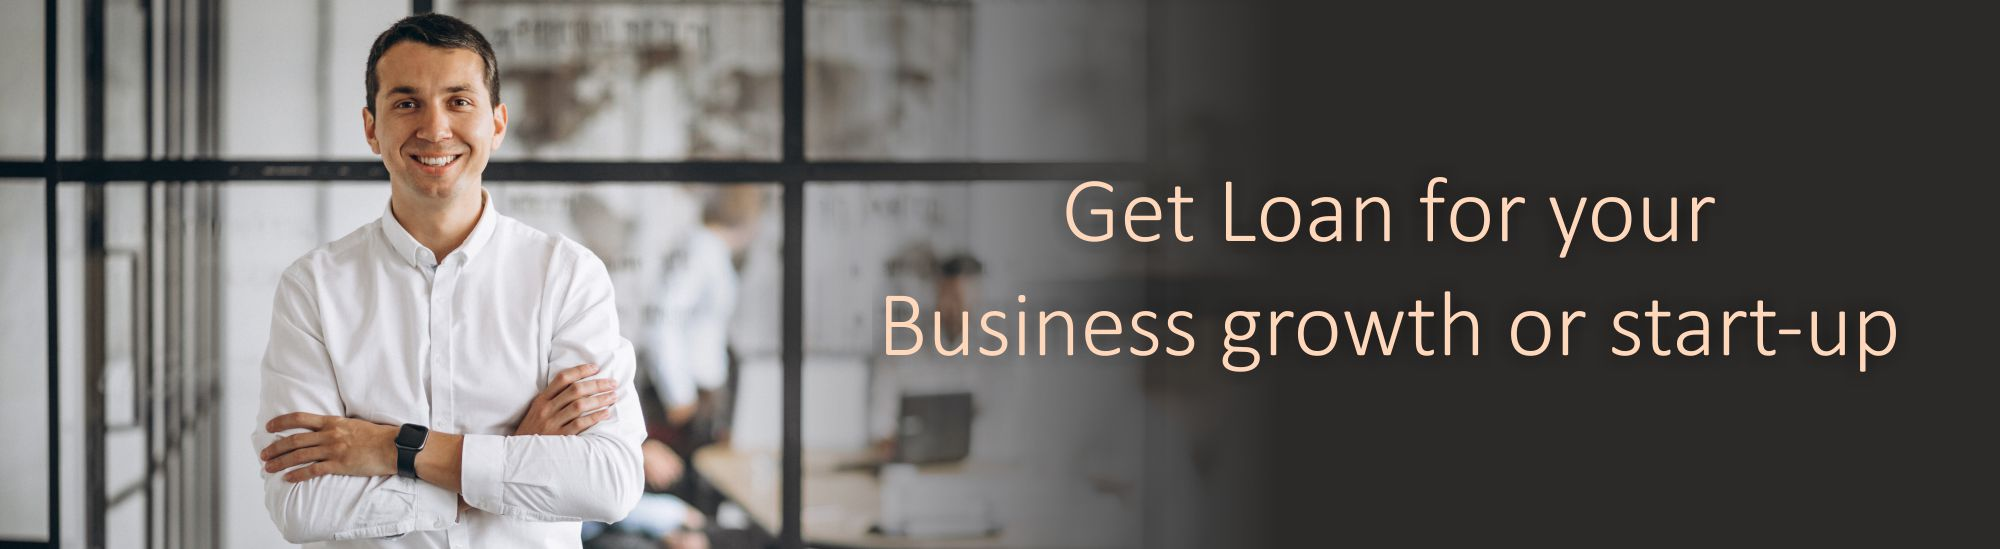 Get Loan for your business growth